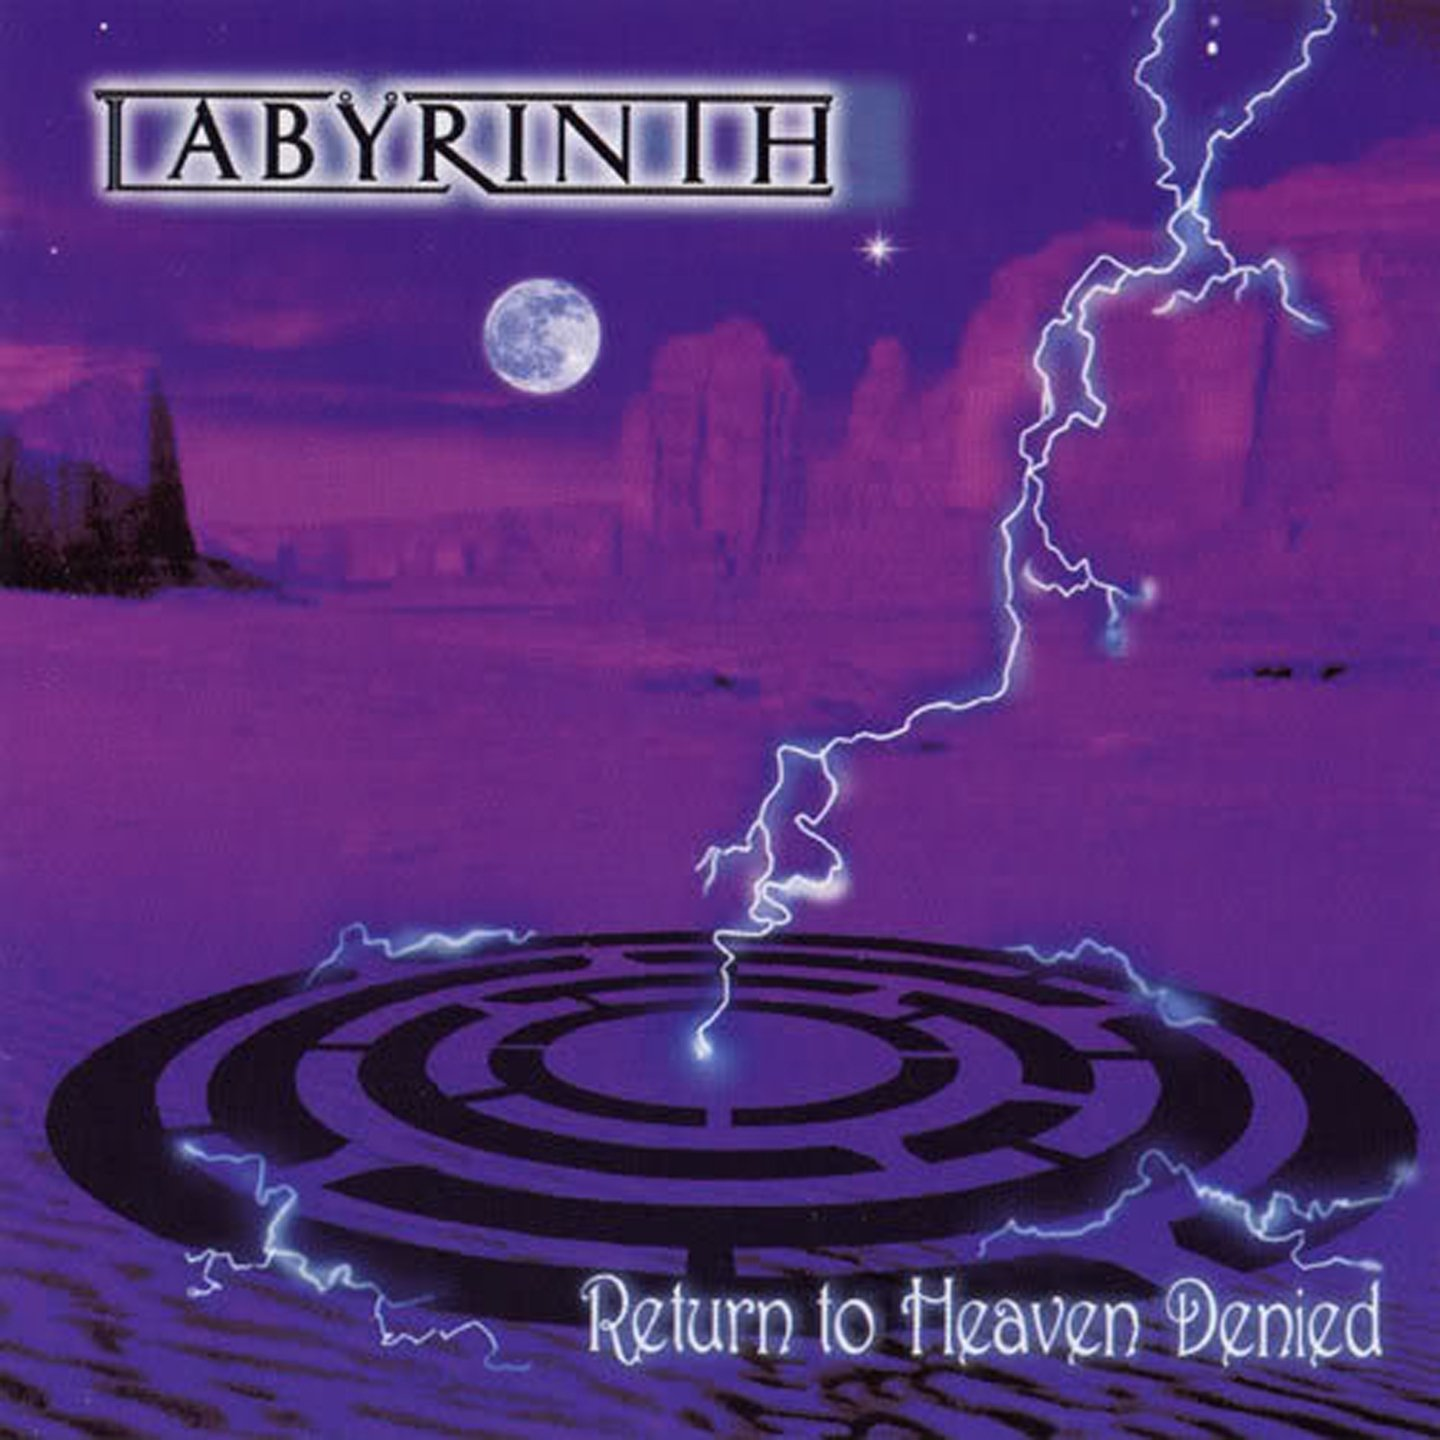 LABYRINTH – RETURN TO HEAVEN DENIED